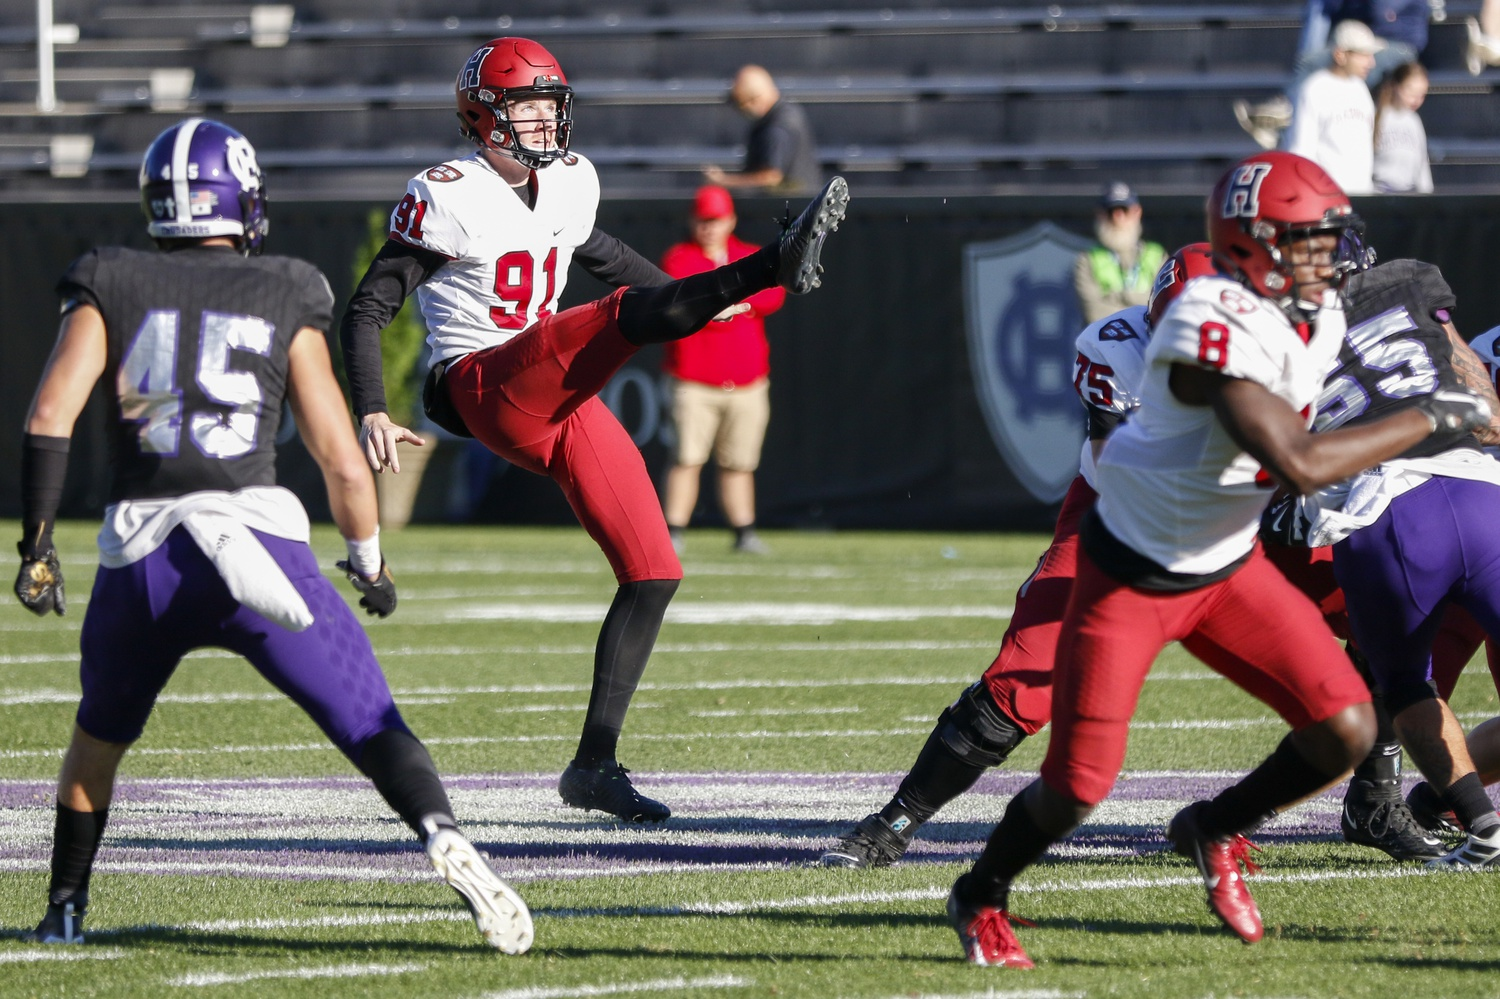 Harvard punter Sean McKeogh sends a the ball back to Holy Cross. The senior punted six time, five of which landed within the opponents 20-yard line.